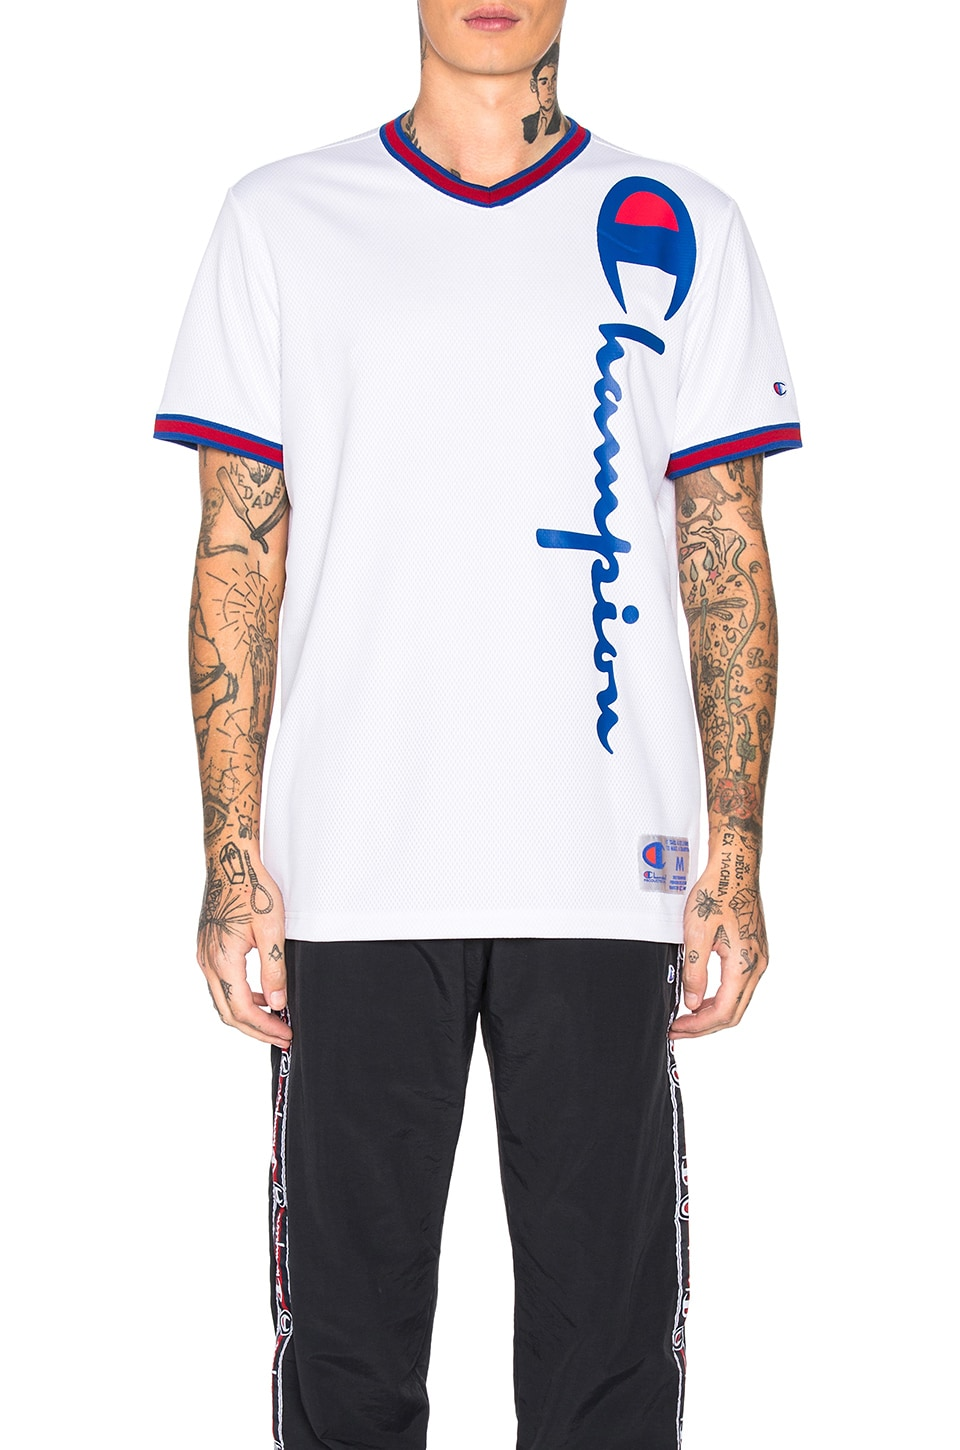 Champion Reverse Weave Champion V-Neck Logo Tee in White & Red & Blue